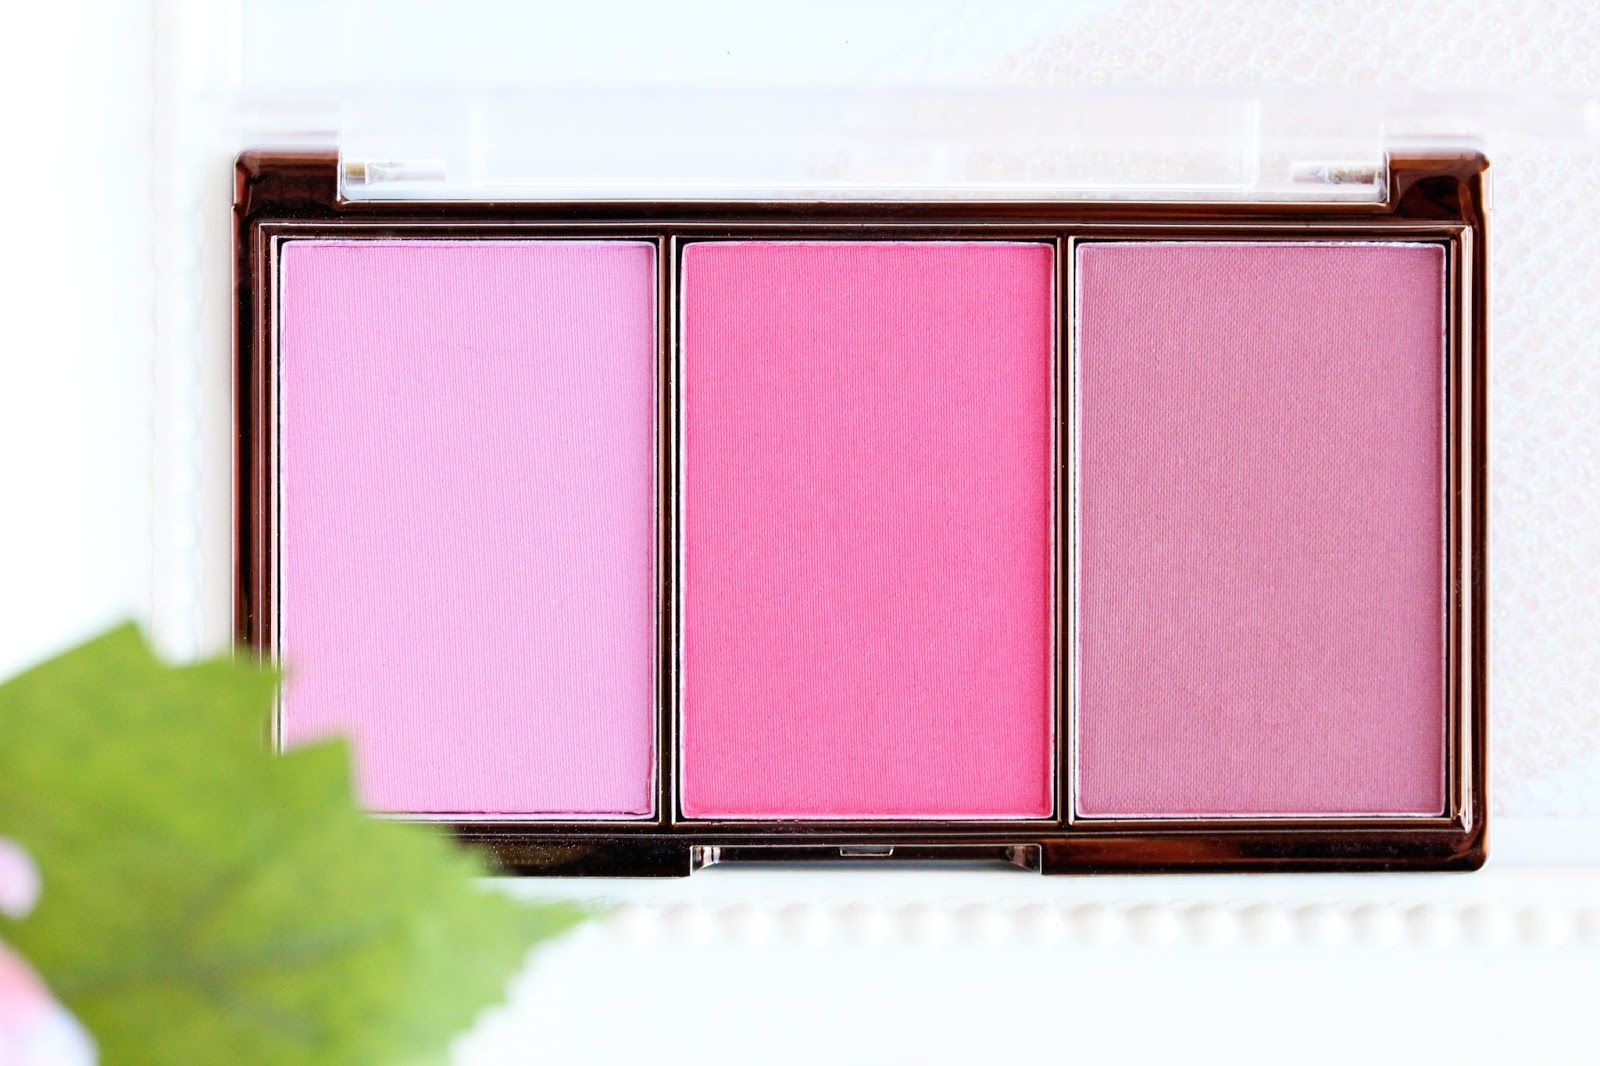 H&M Cosmetics Make Me Blush Palette